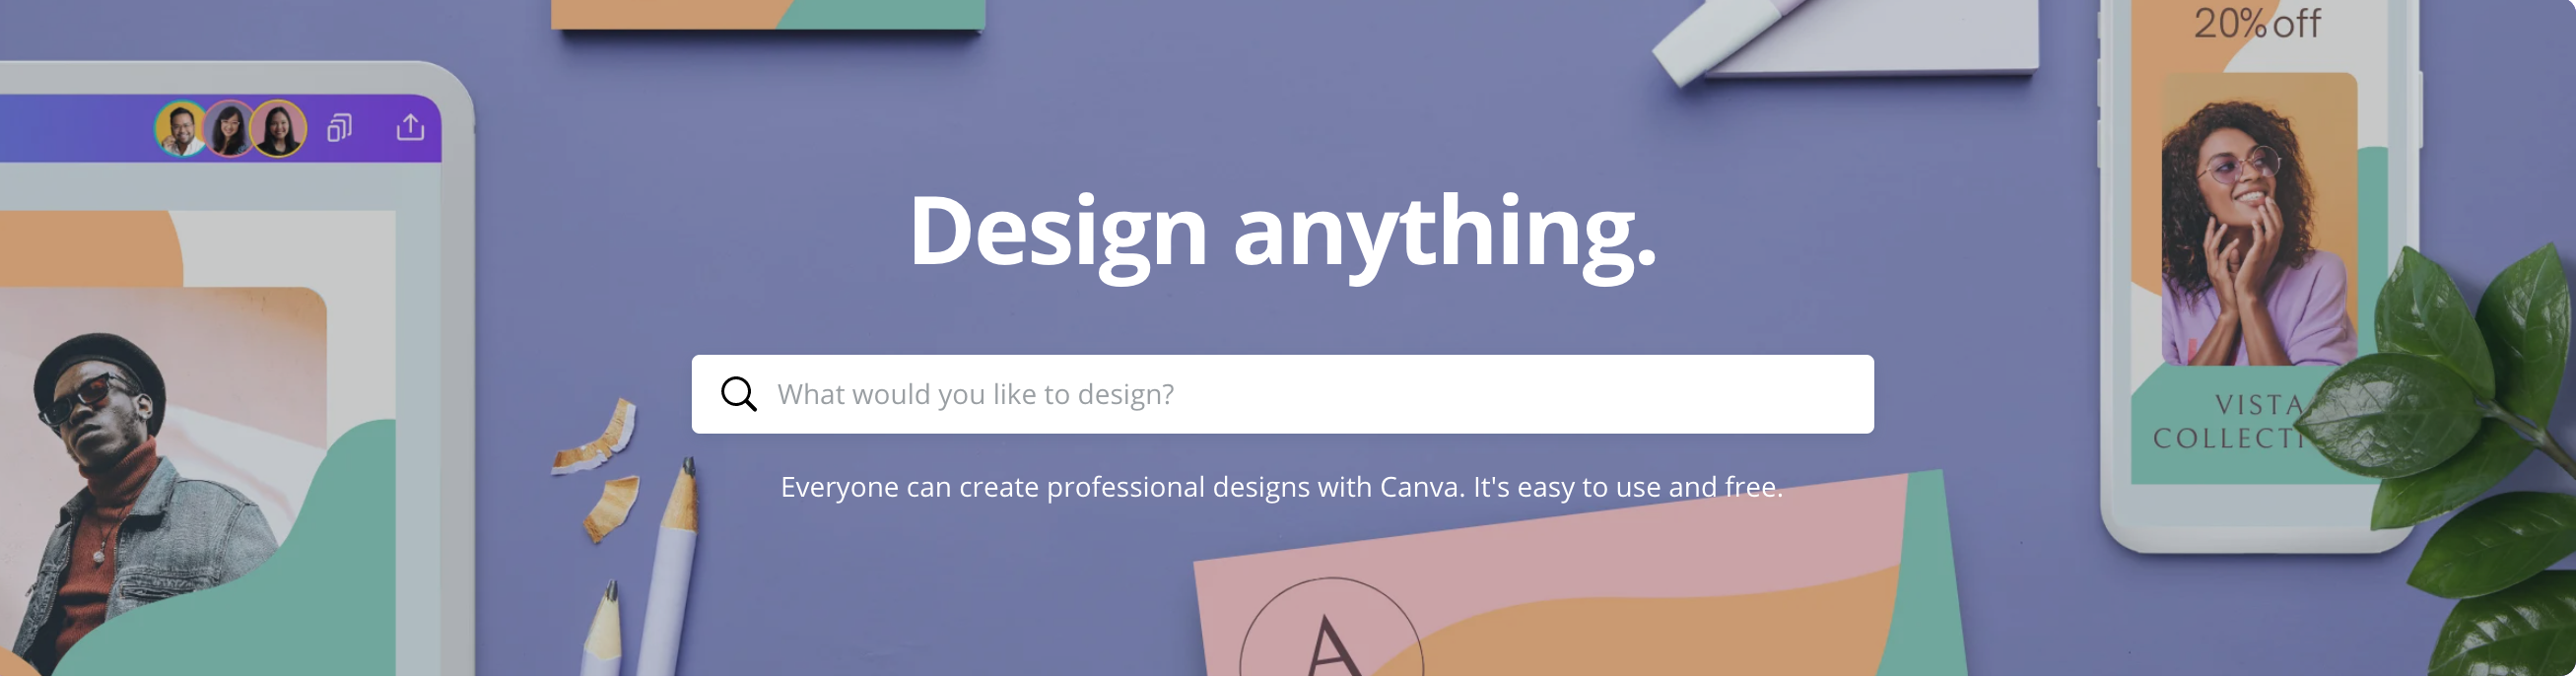 canva about us